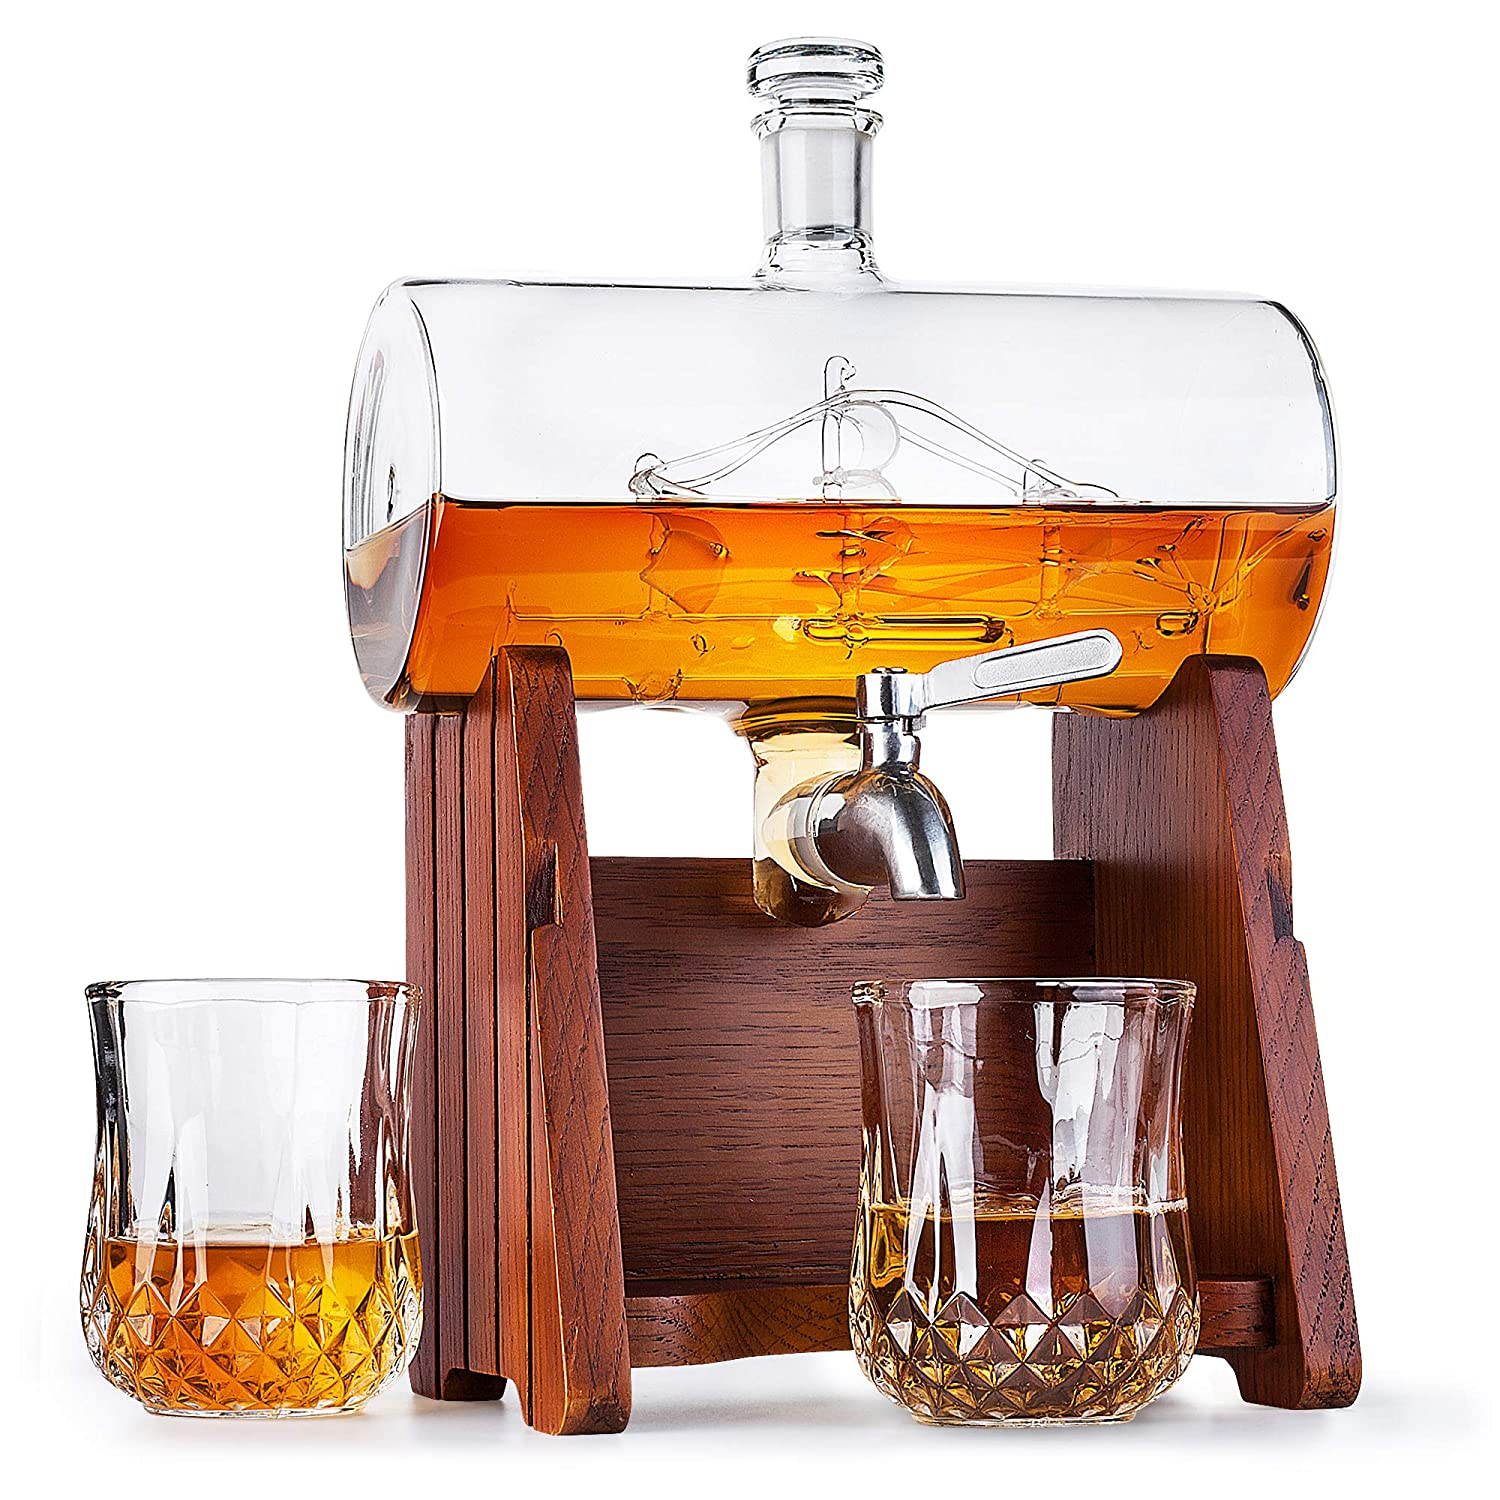 Milburga Unique Whiskey Decanter Set – Sailing Ship Decanter with 2 Lead Free Scotch Glasses and Oak Stand – 1150ml Vintage Liquor Dispenser, Elegant Bourbon Gift Set for Scotch, Whisky, Rum & Alcohol